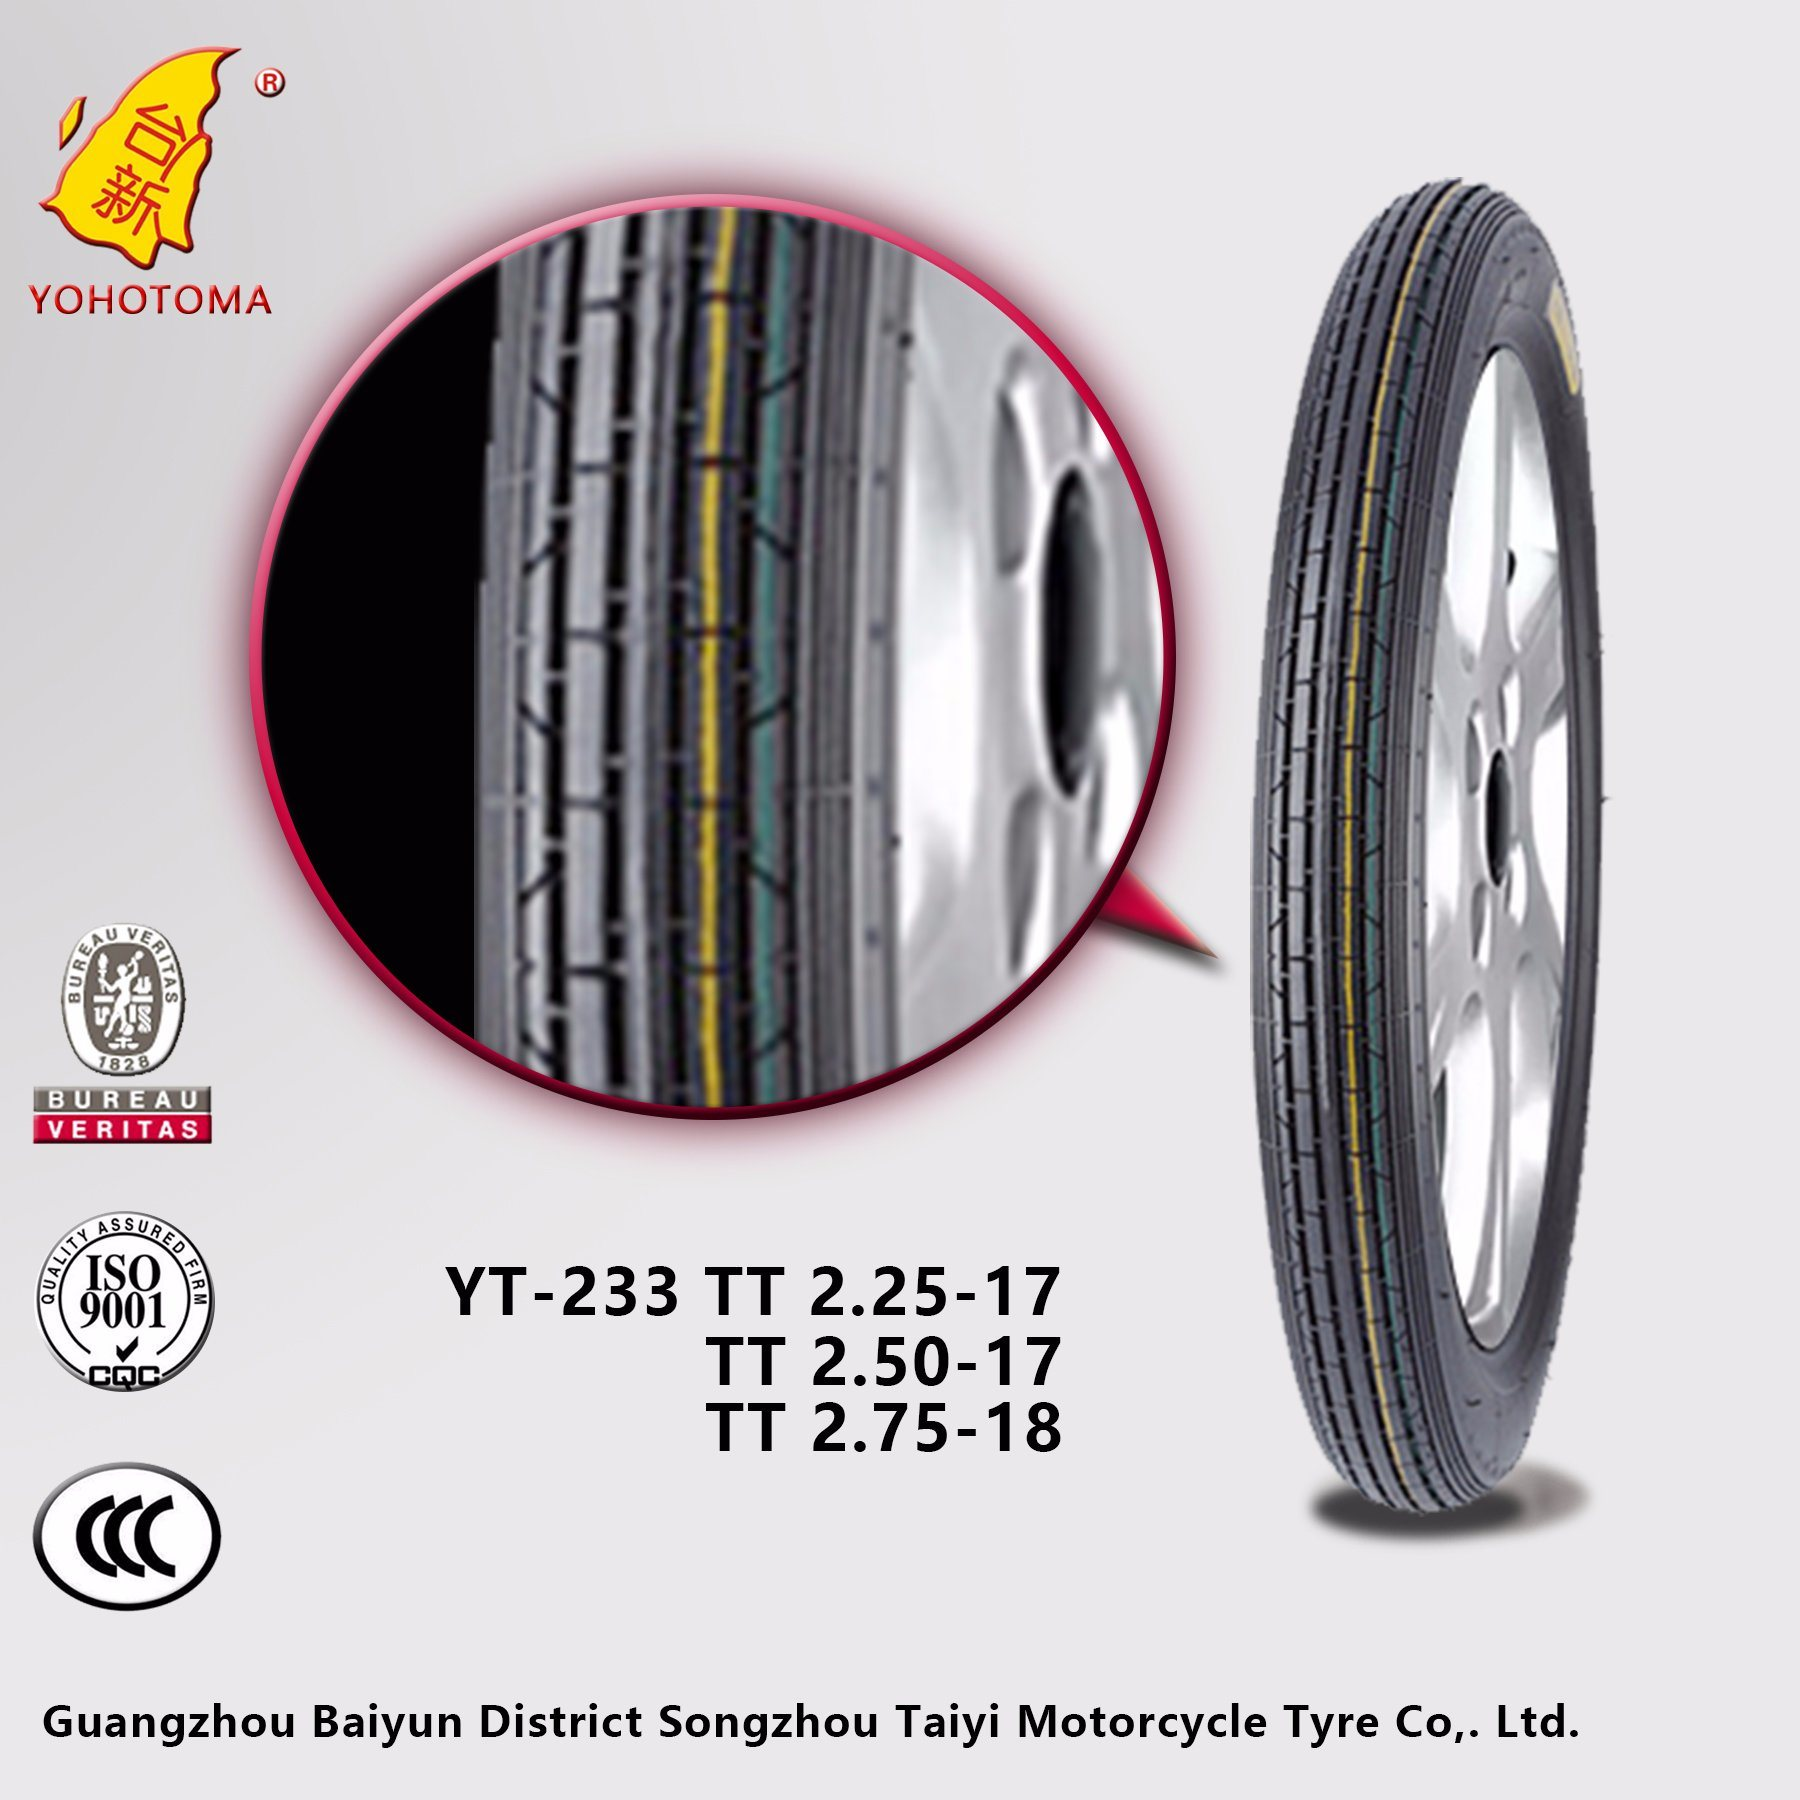 China Low Price High Quality Mount Motorcycle Tyre 110/90-16 Yt-209b Tt/Tl